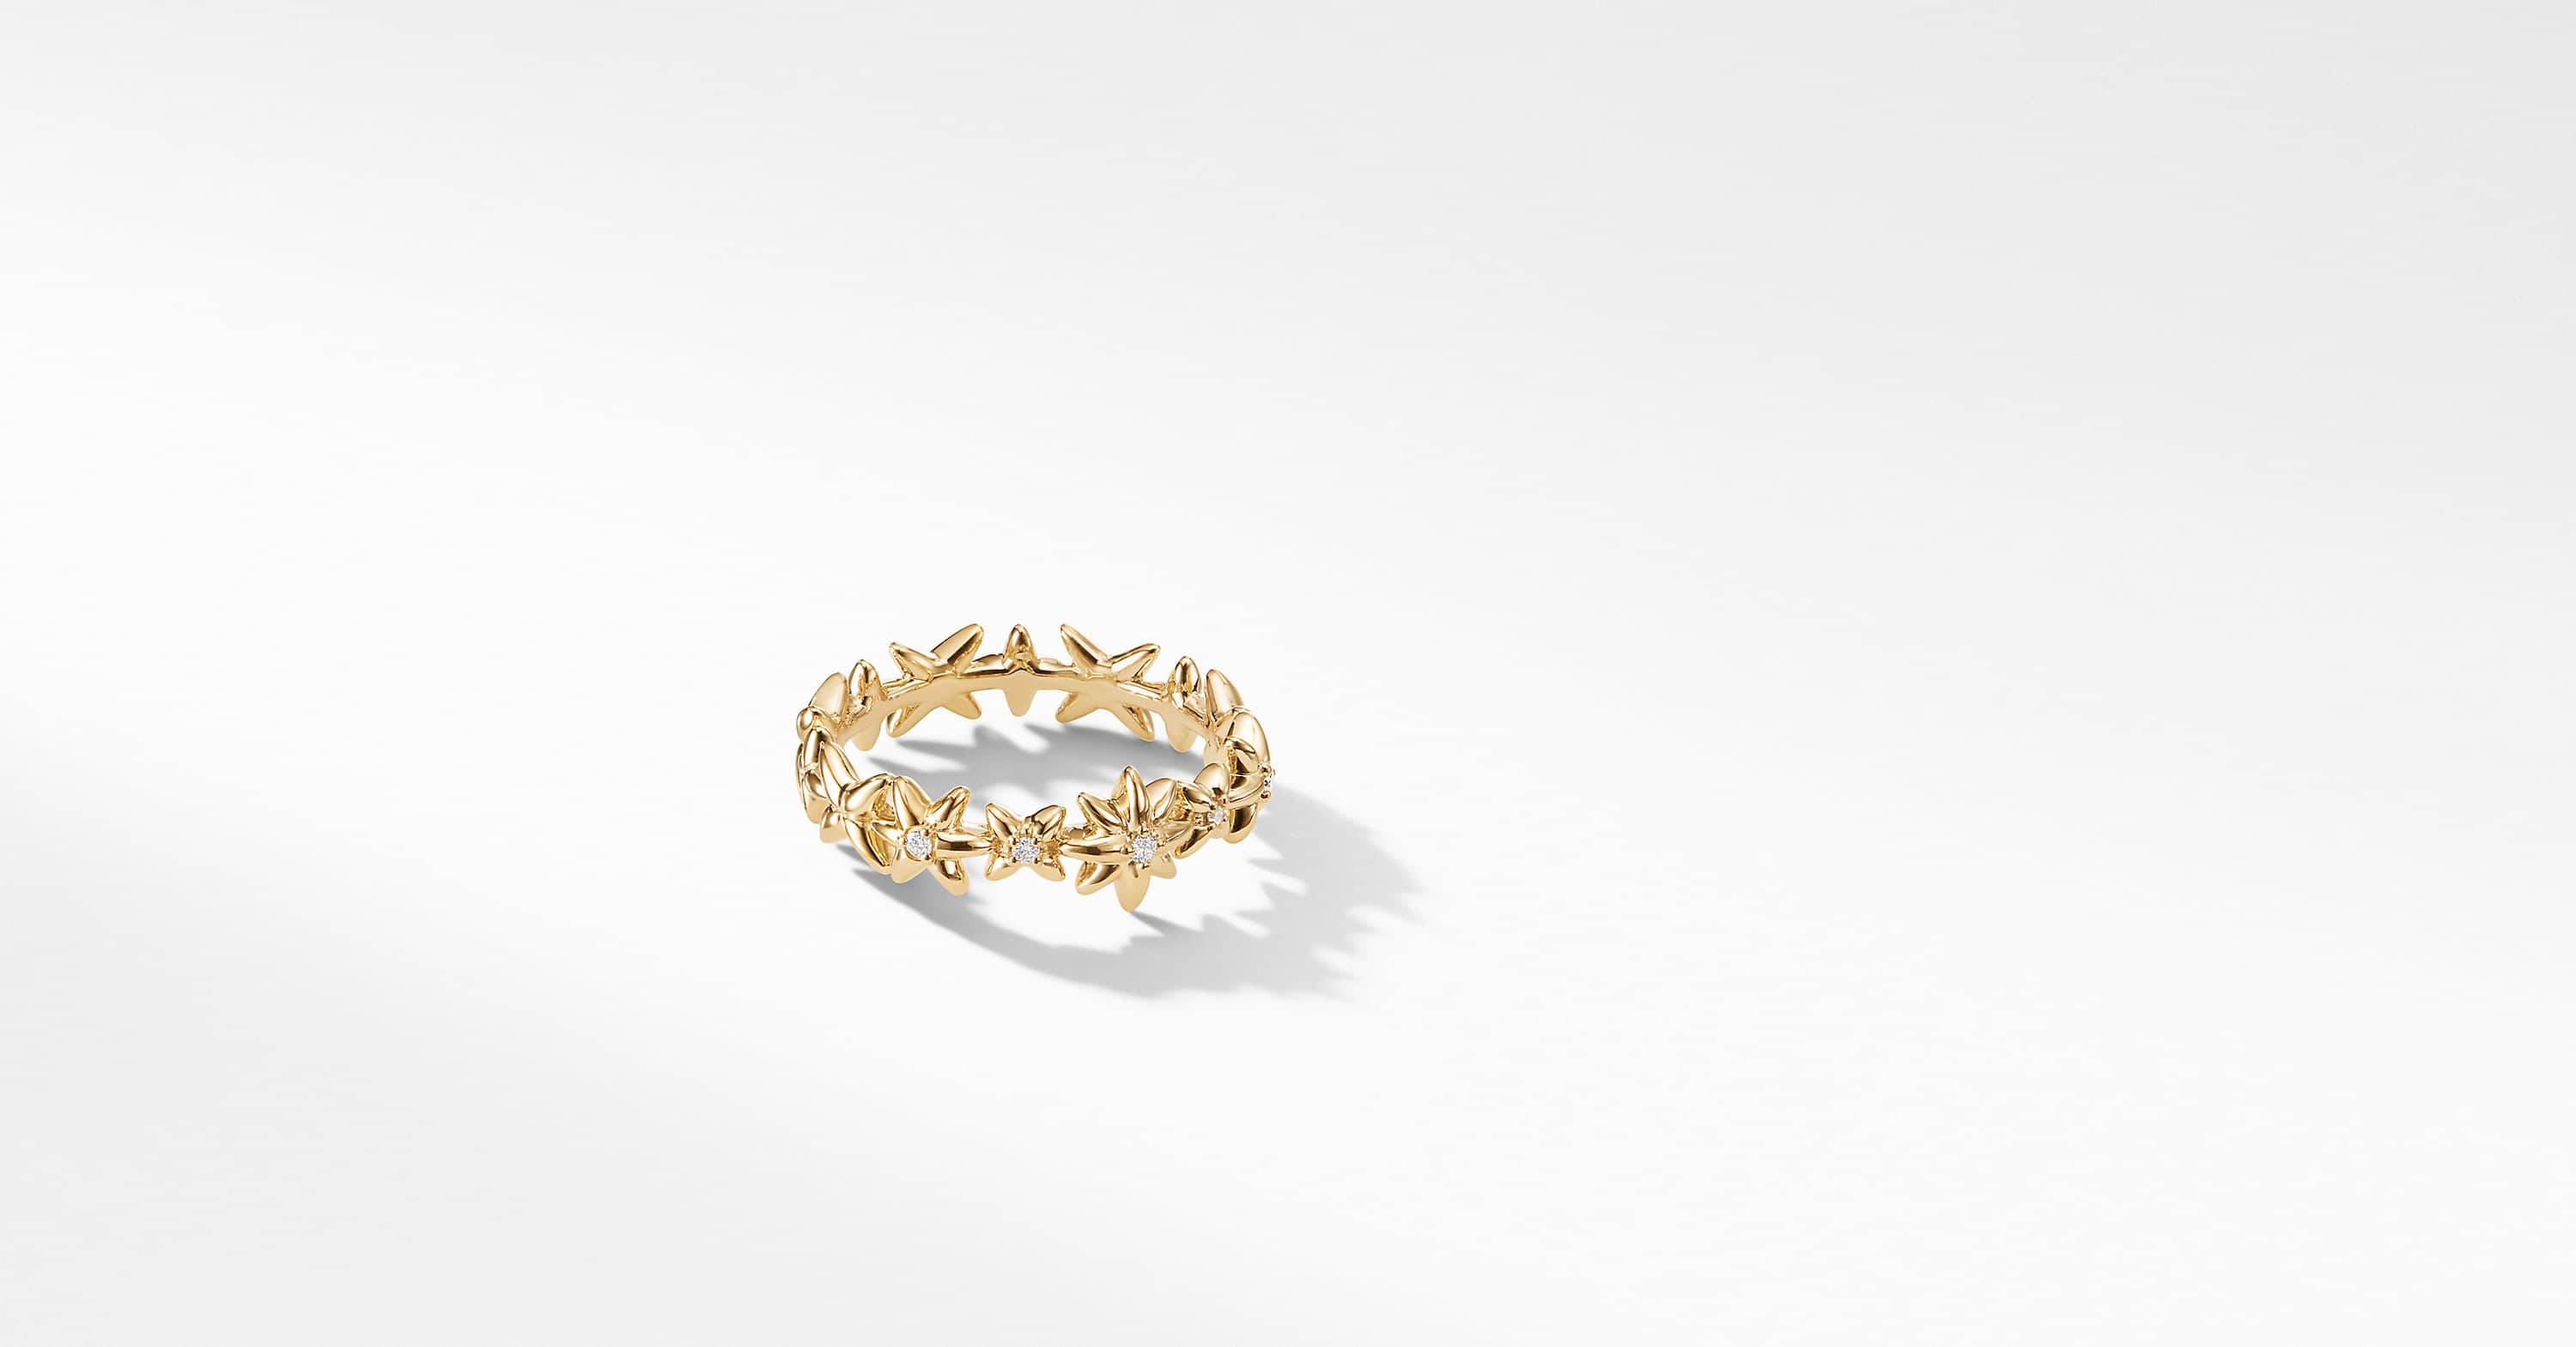 Starburst Constellation Ring in 18K Gold with Diamonds